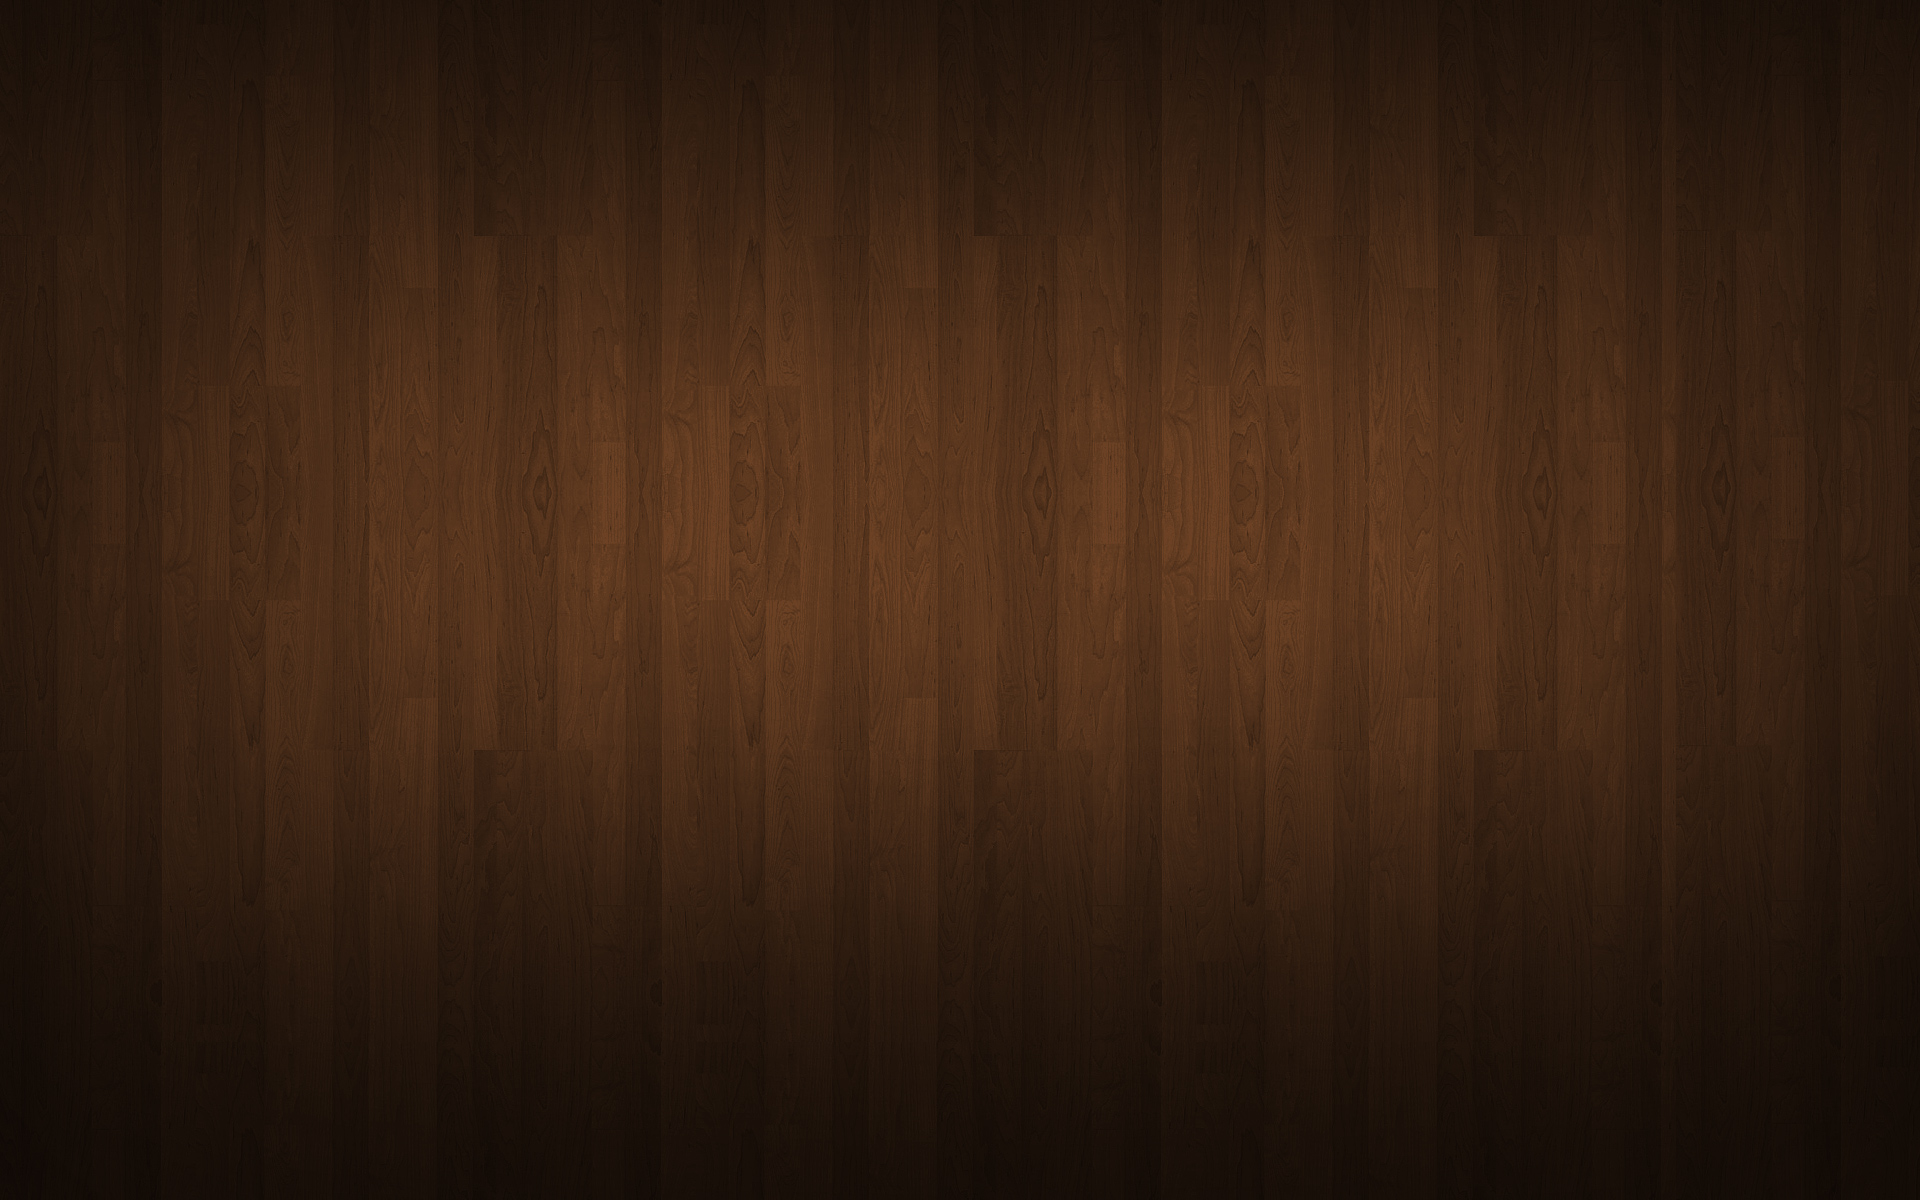 195 Wood HD Wallpapers